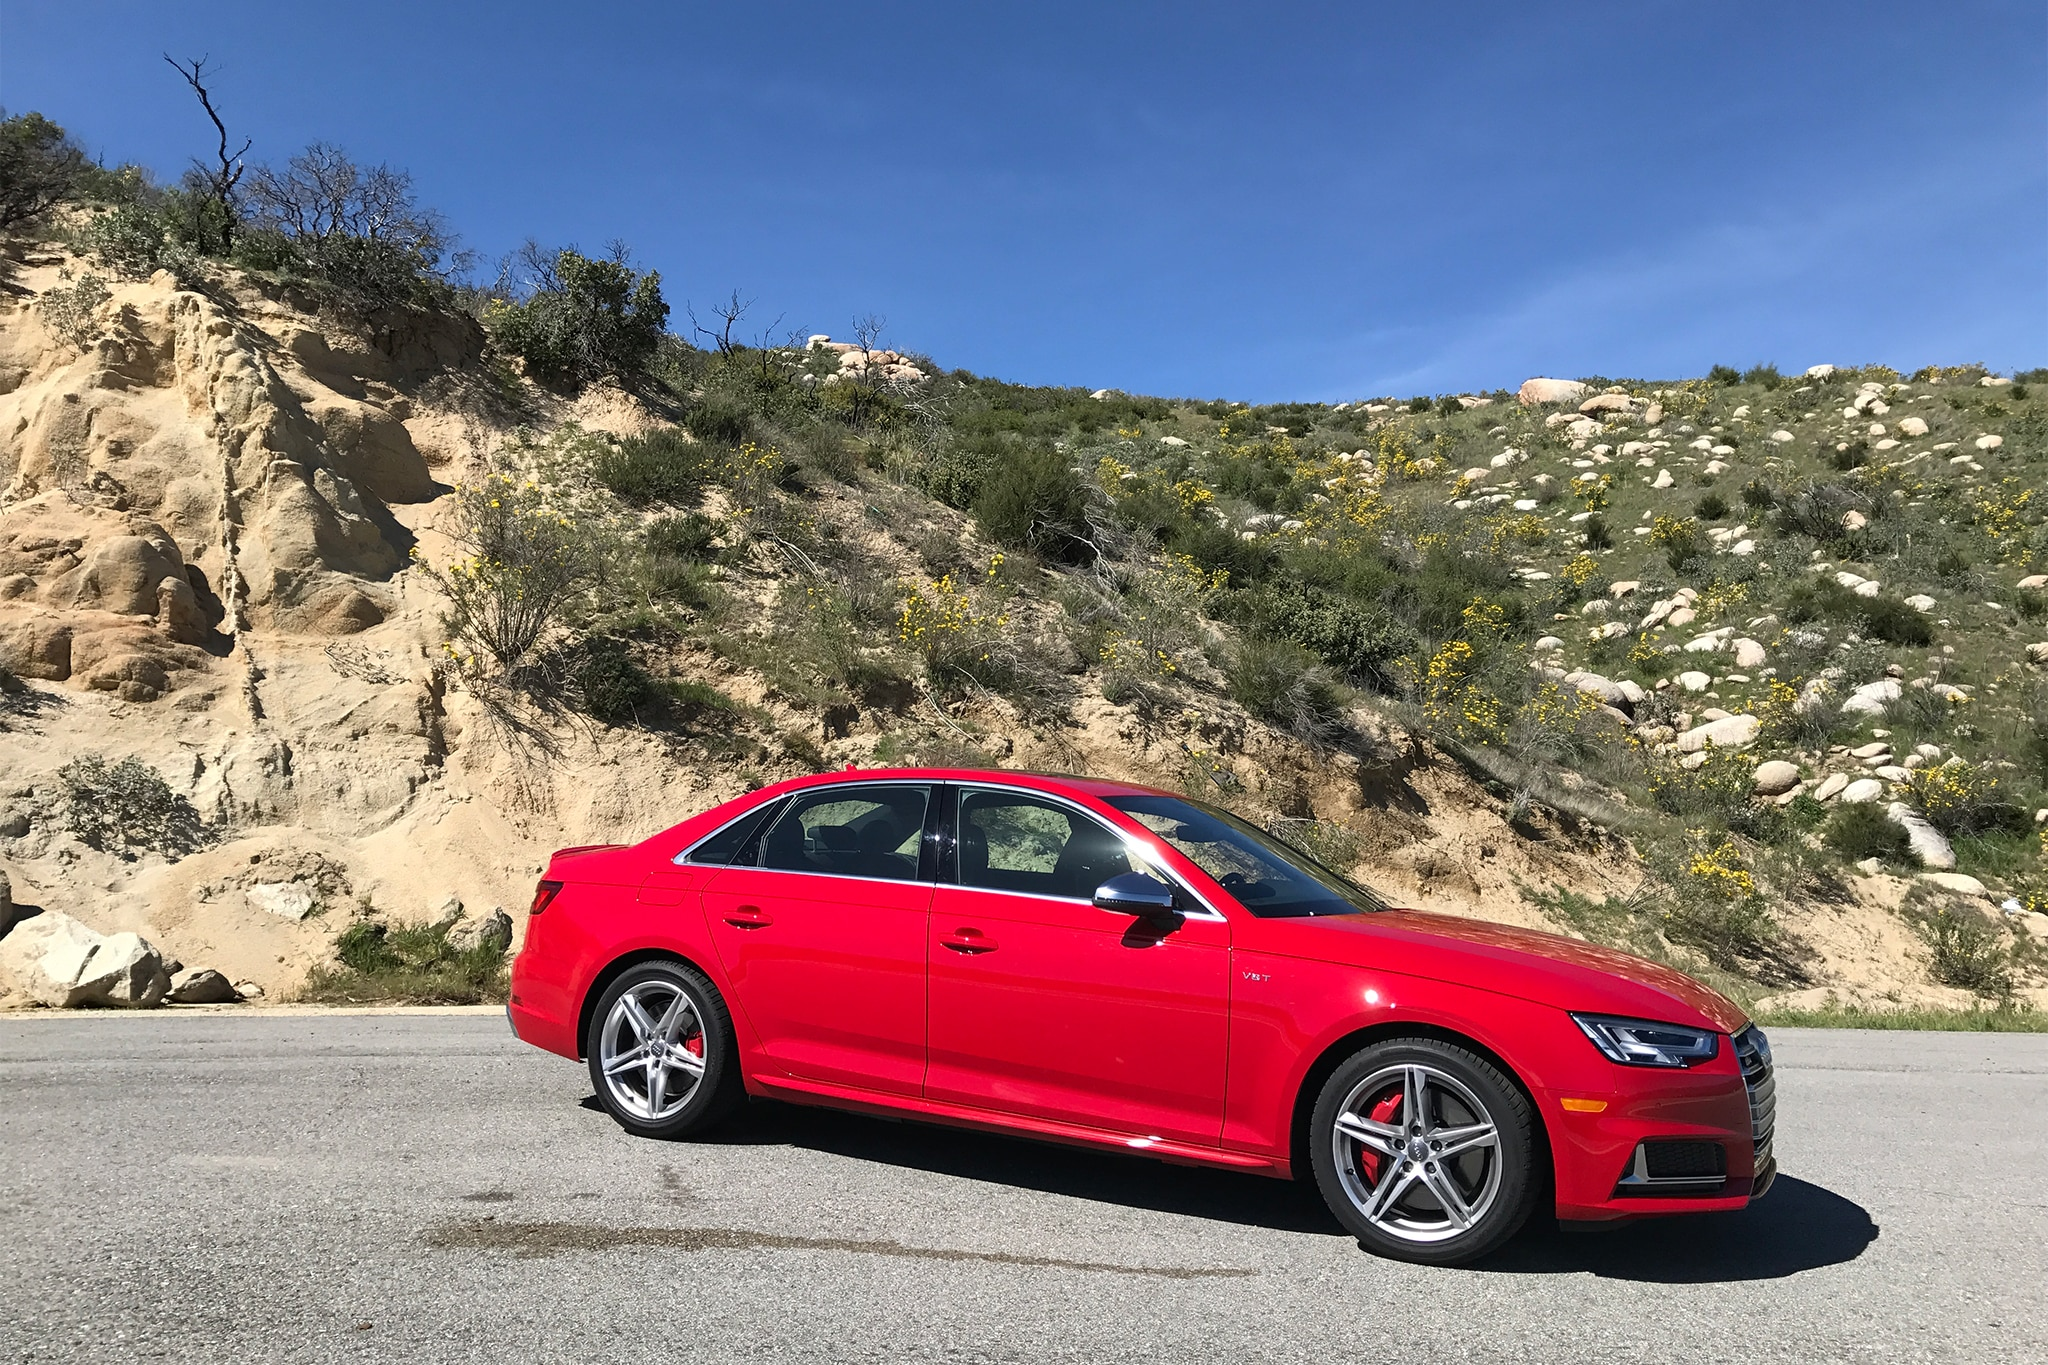 2018 audi s4. wonderful audi show more in 2018 audi s4